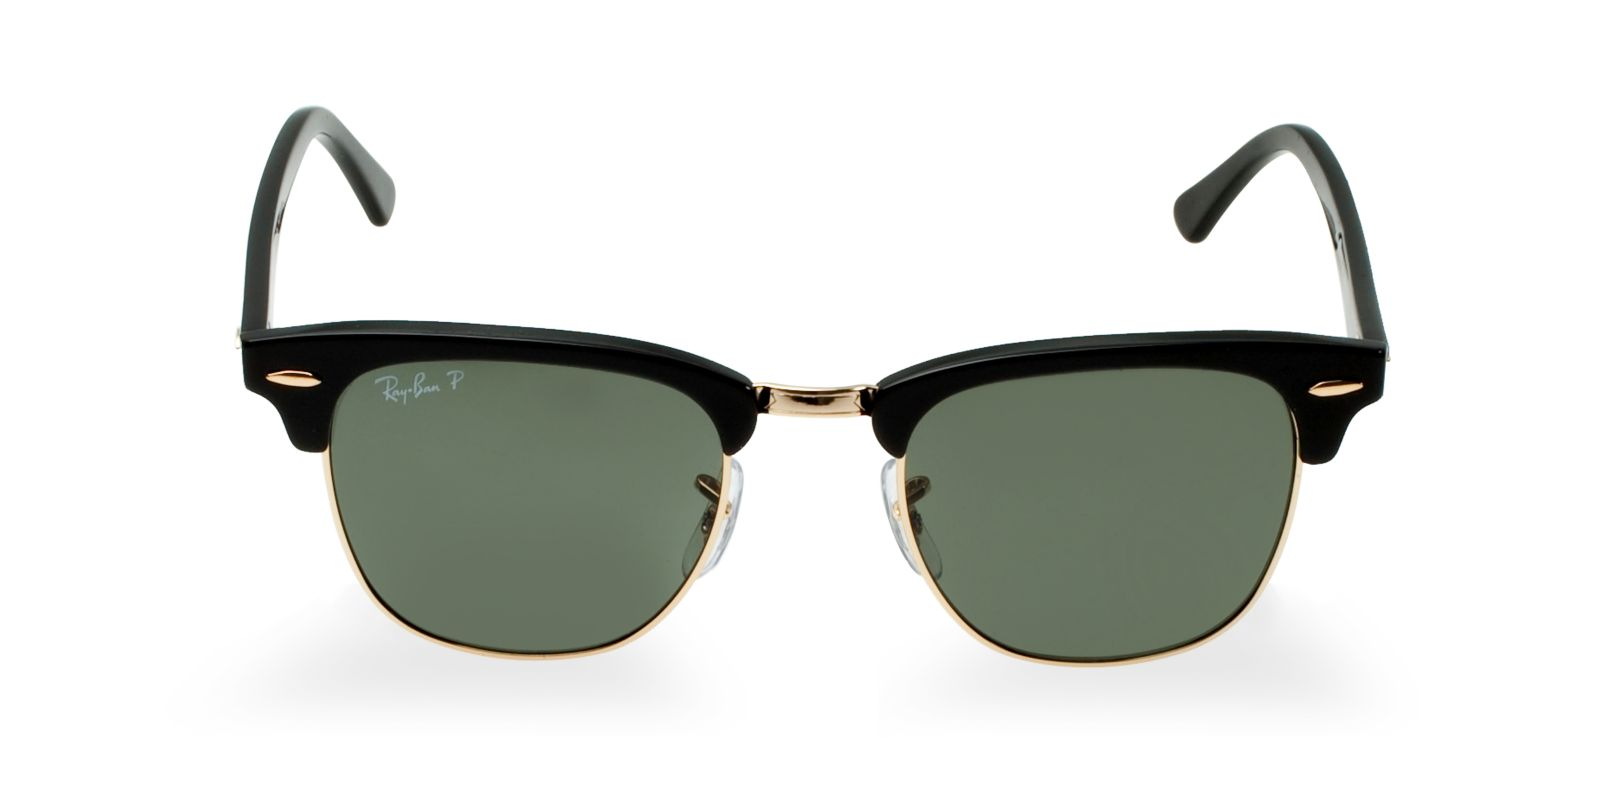 a29ee9a5343e Ray Ban Rb3016 Clubmaster Sunglasses Black Polarized Ray Bans ...